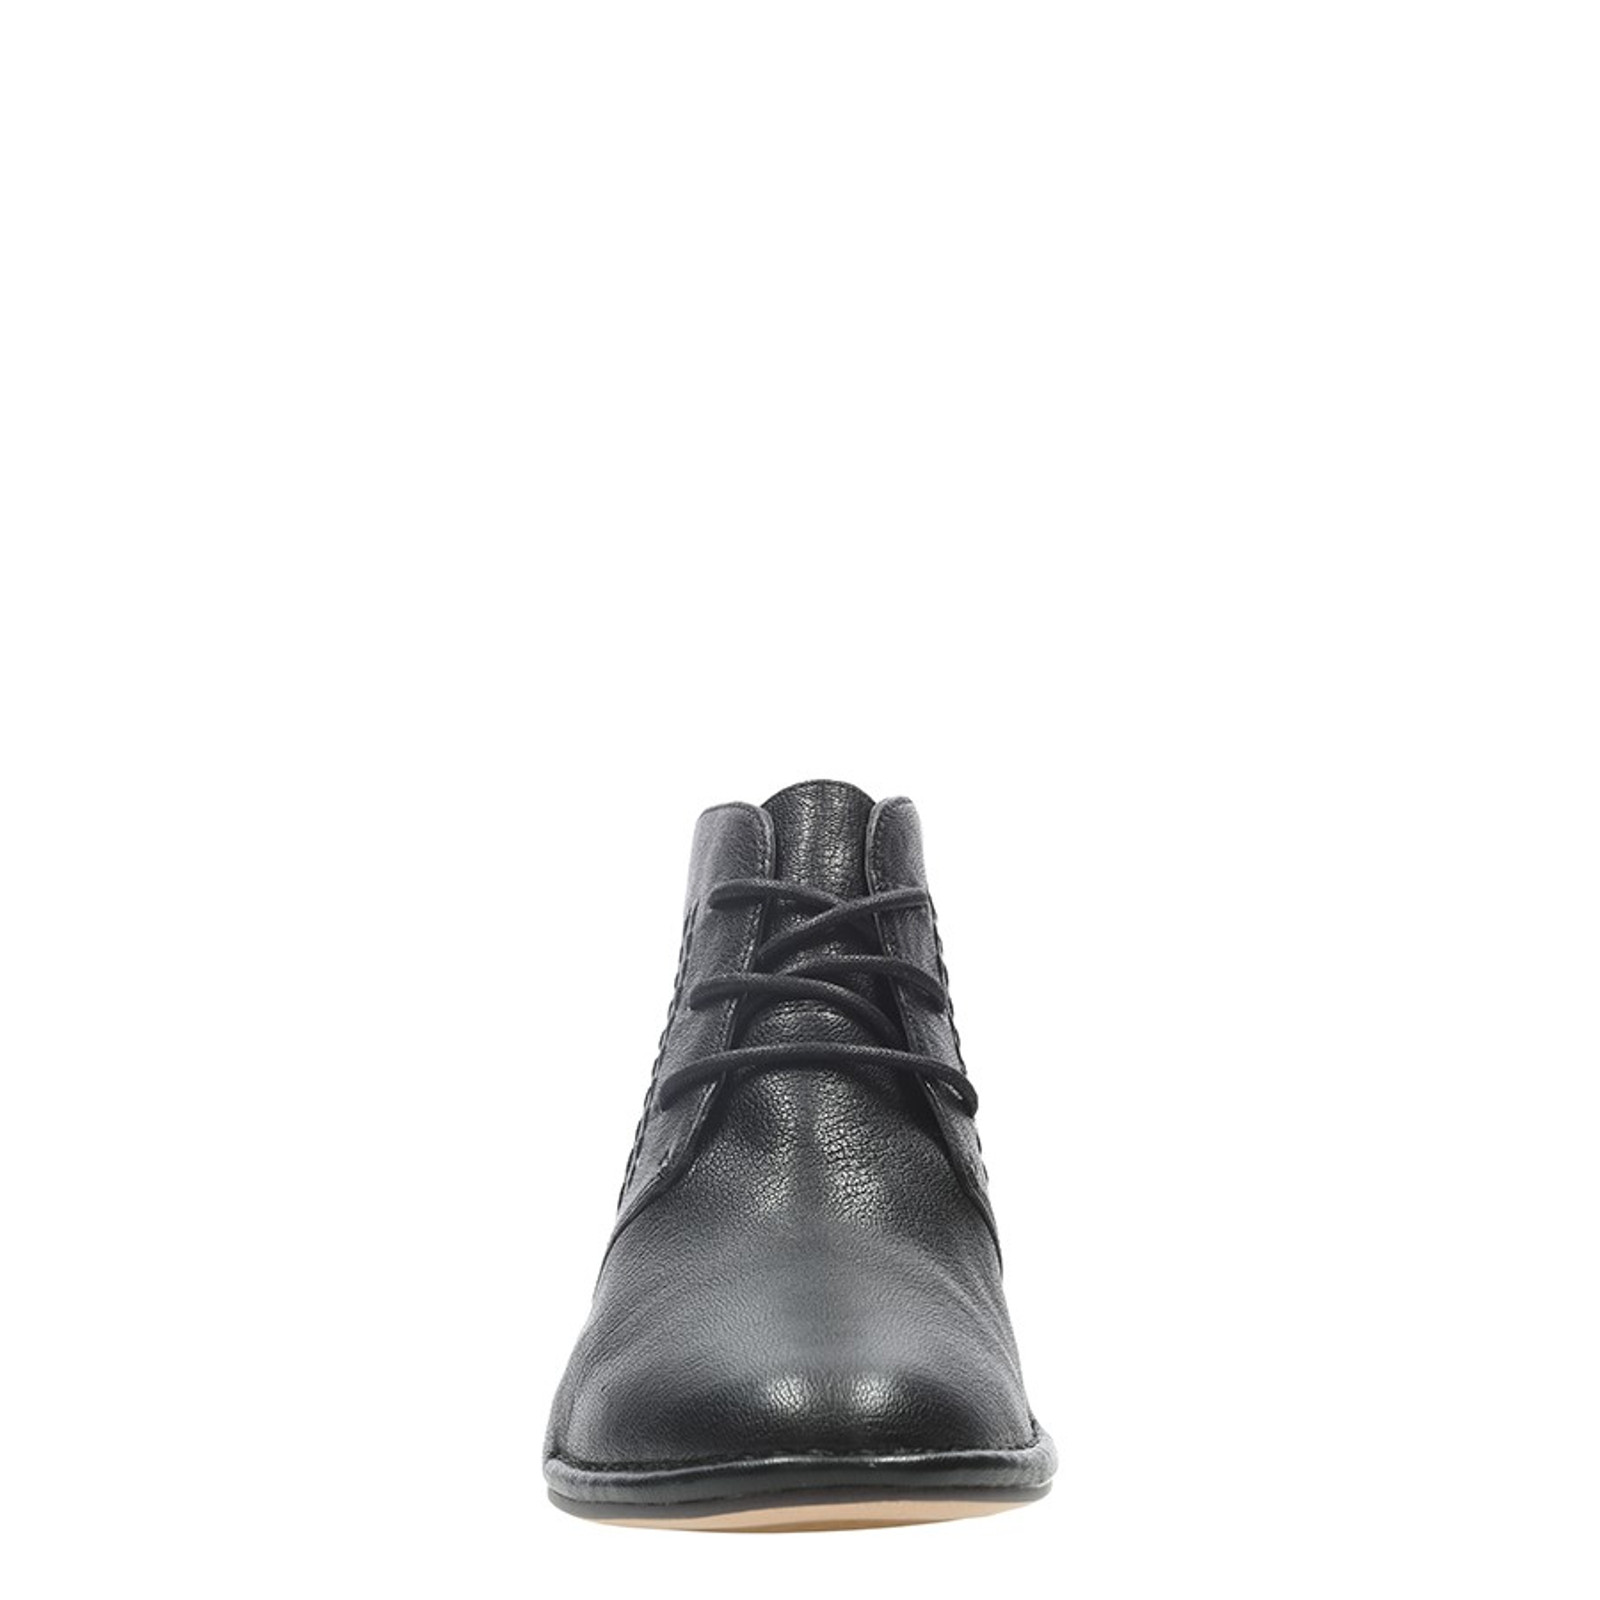 Spiced Charm Black Leather By Clarks